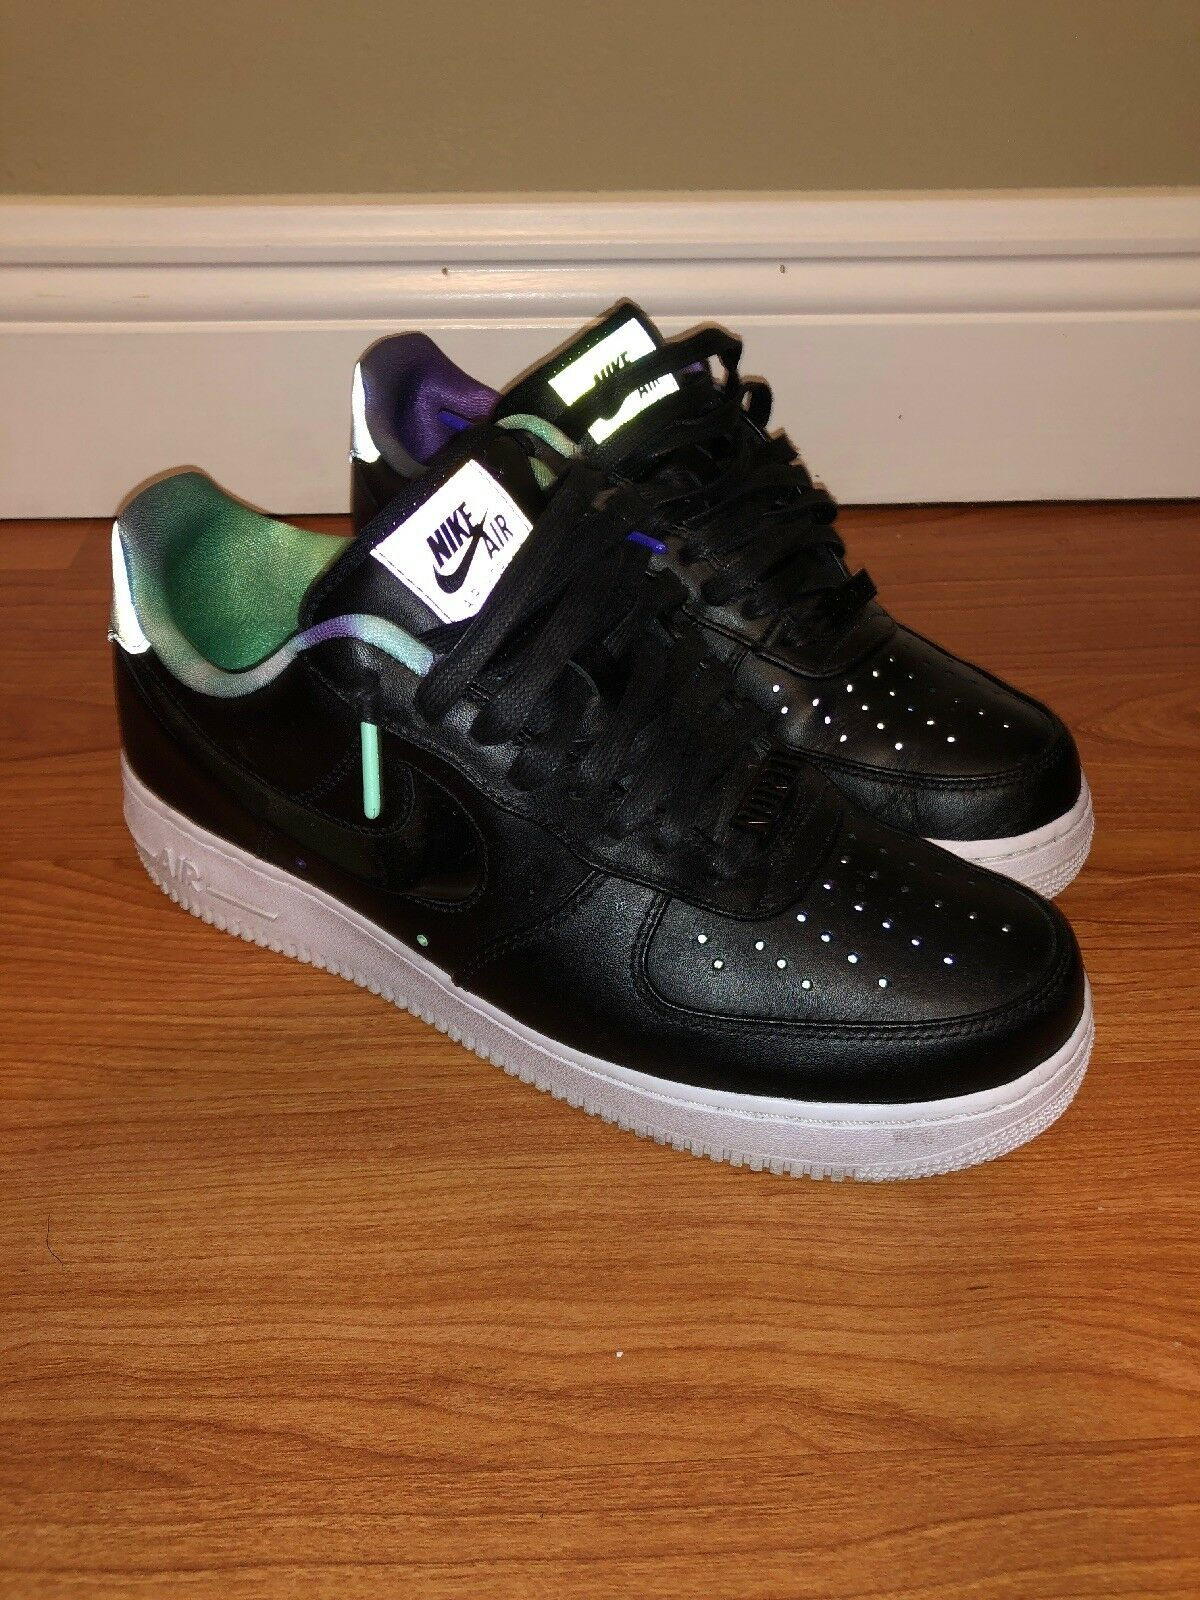 Nike Air force 1 '07 lv8 as qs northern lights size 9.5 mens black Great Cond